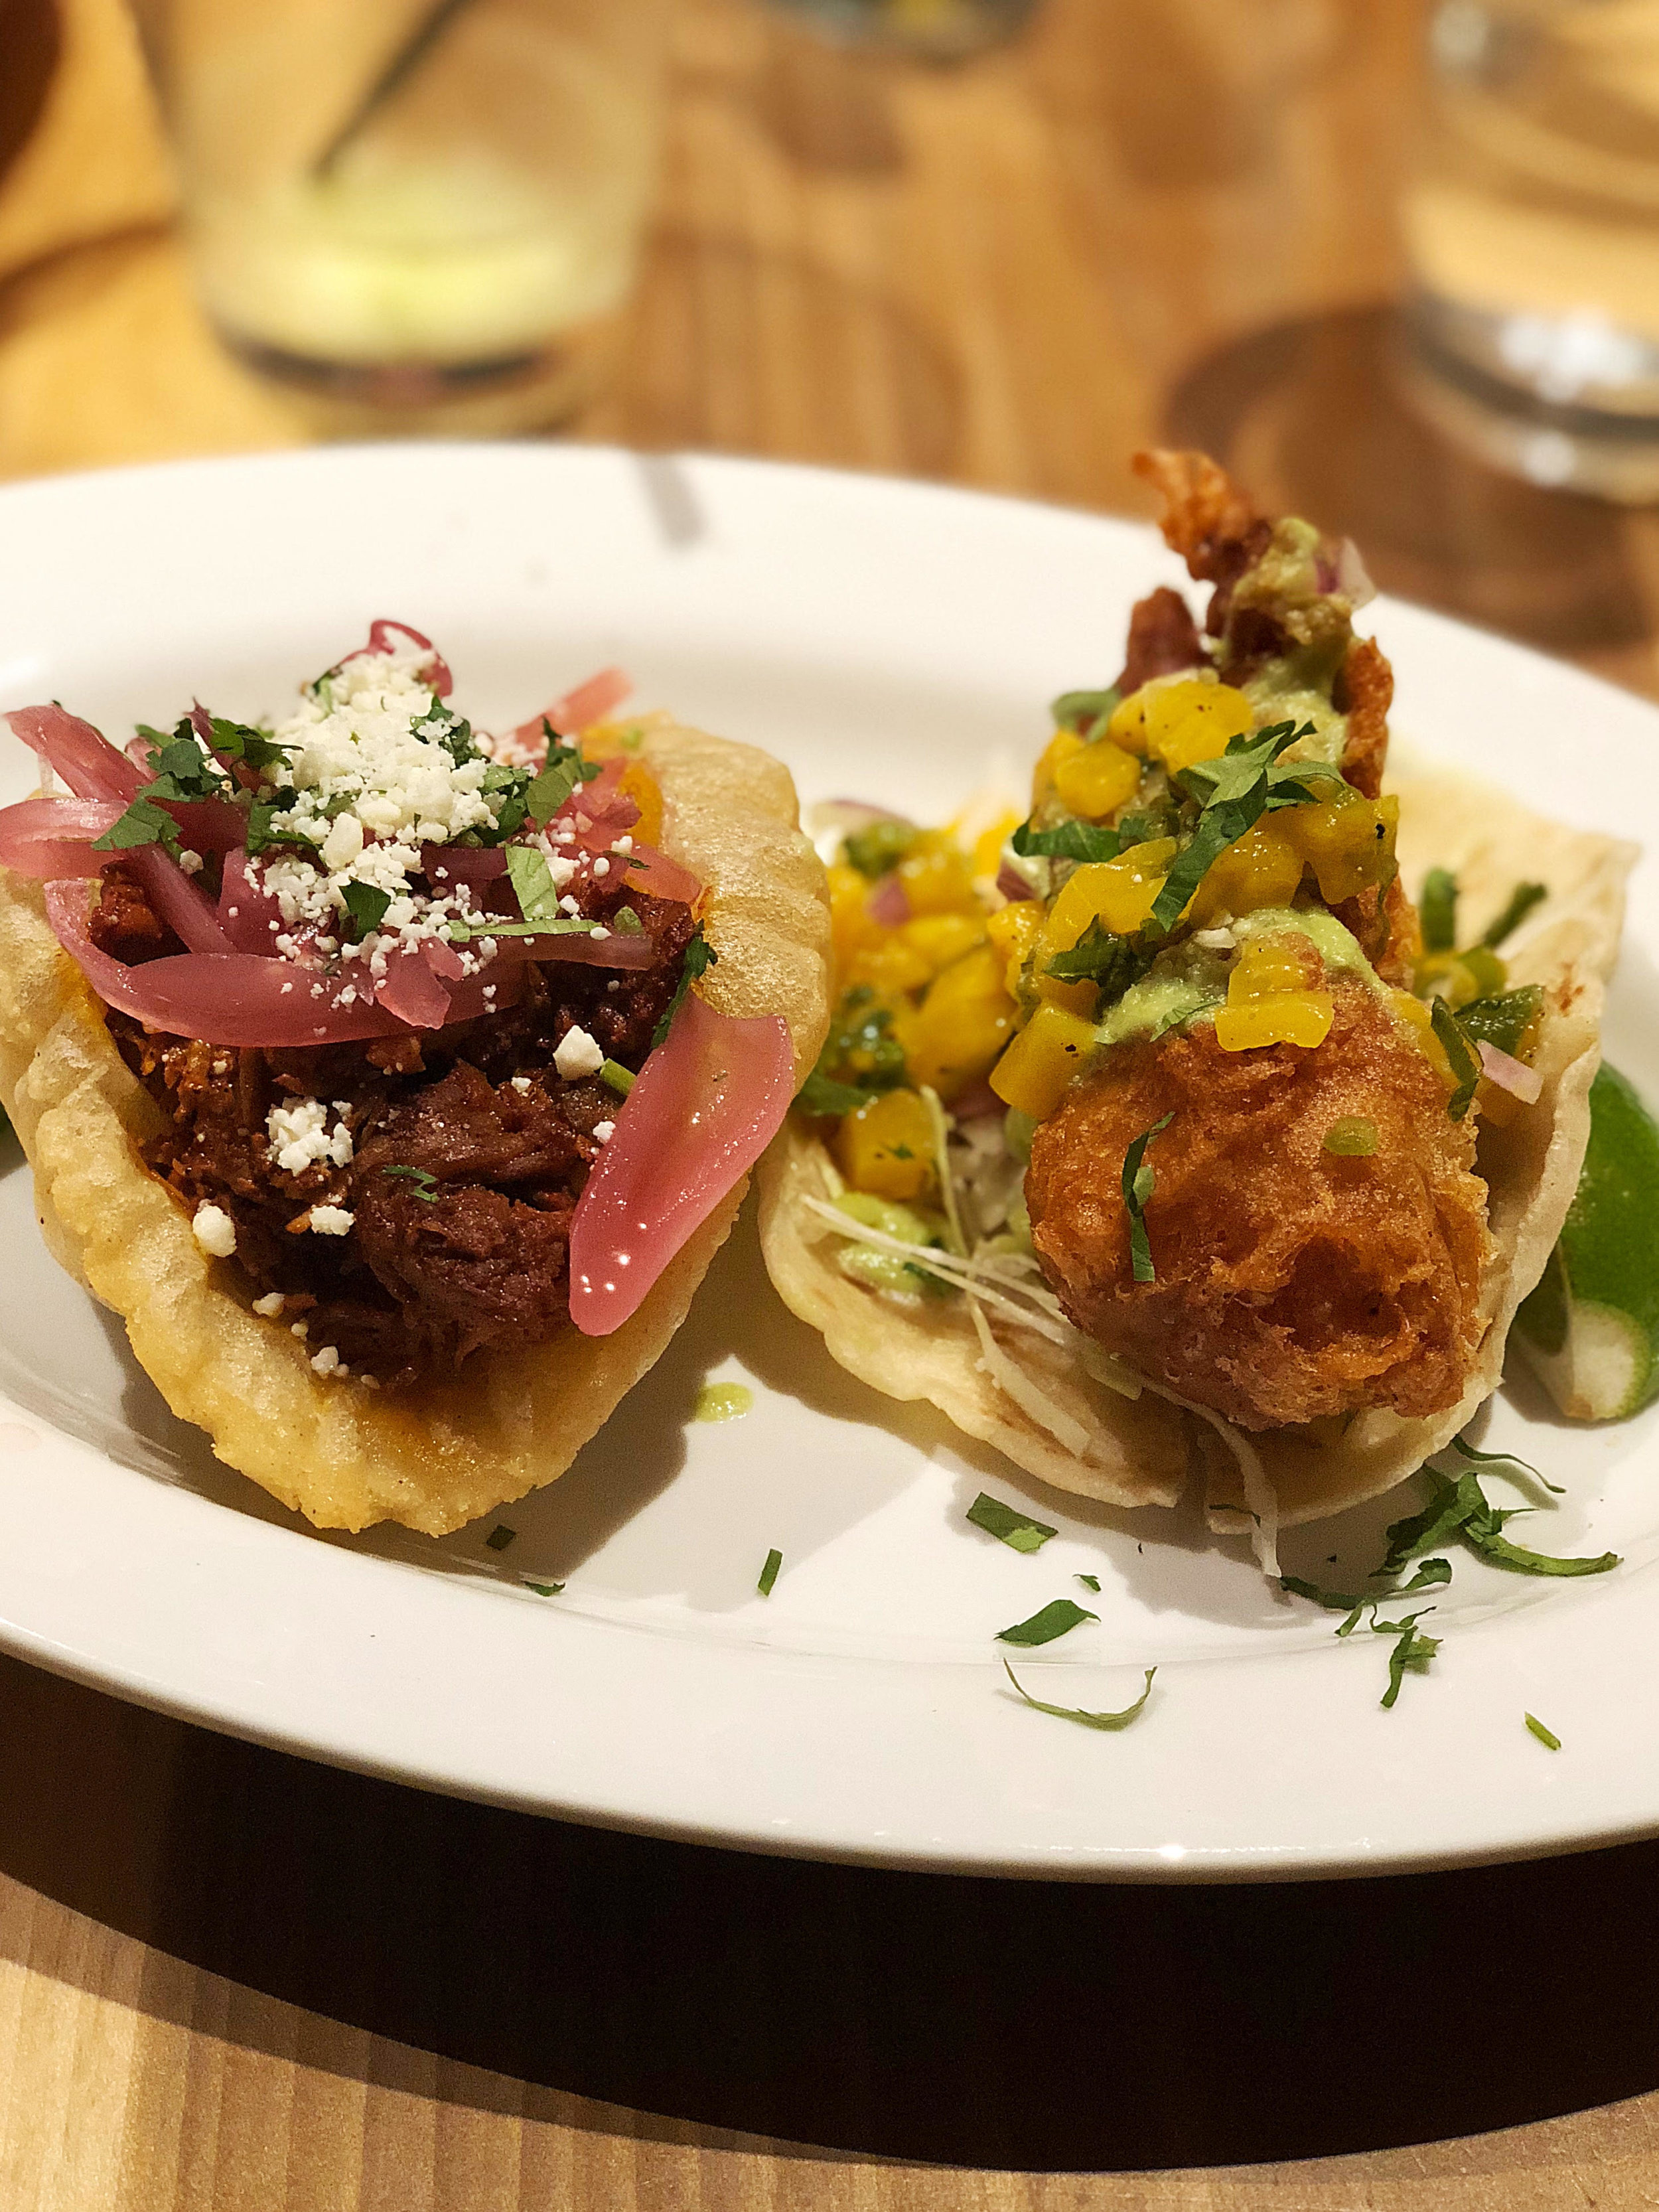 Puffy pork and fried fish taco